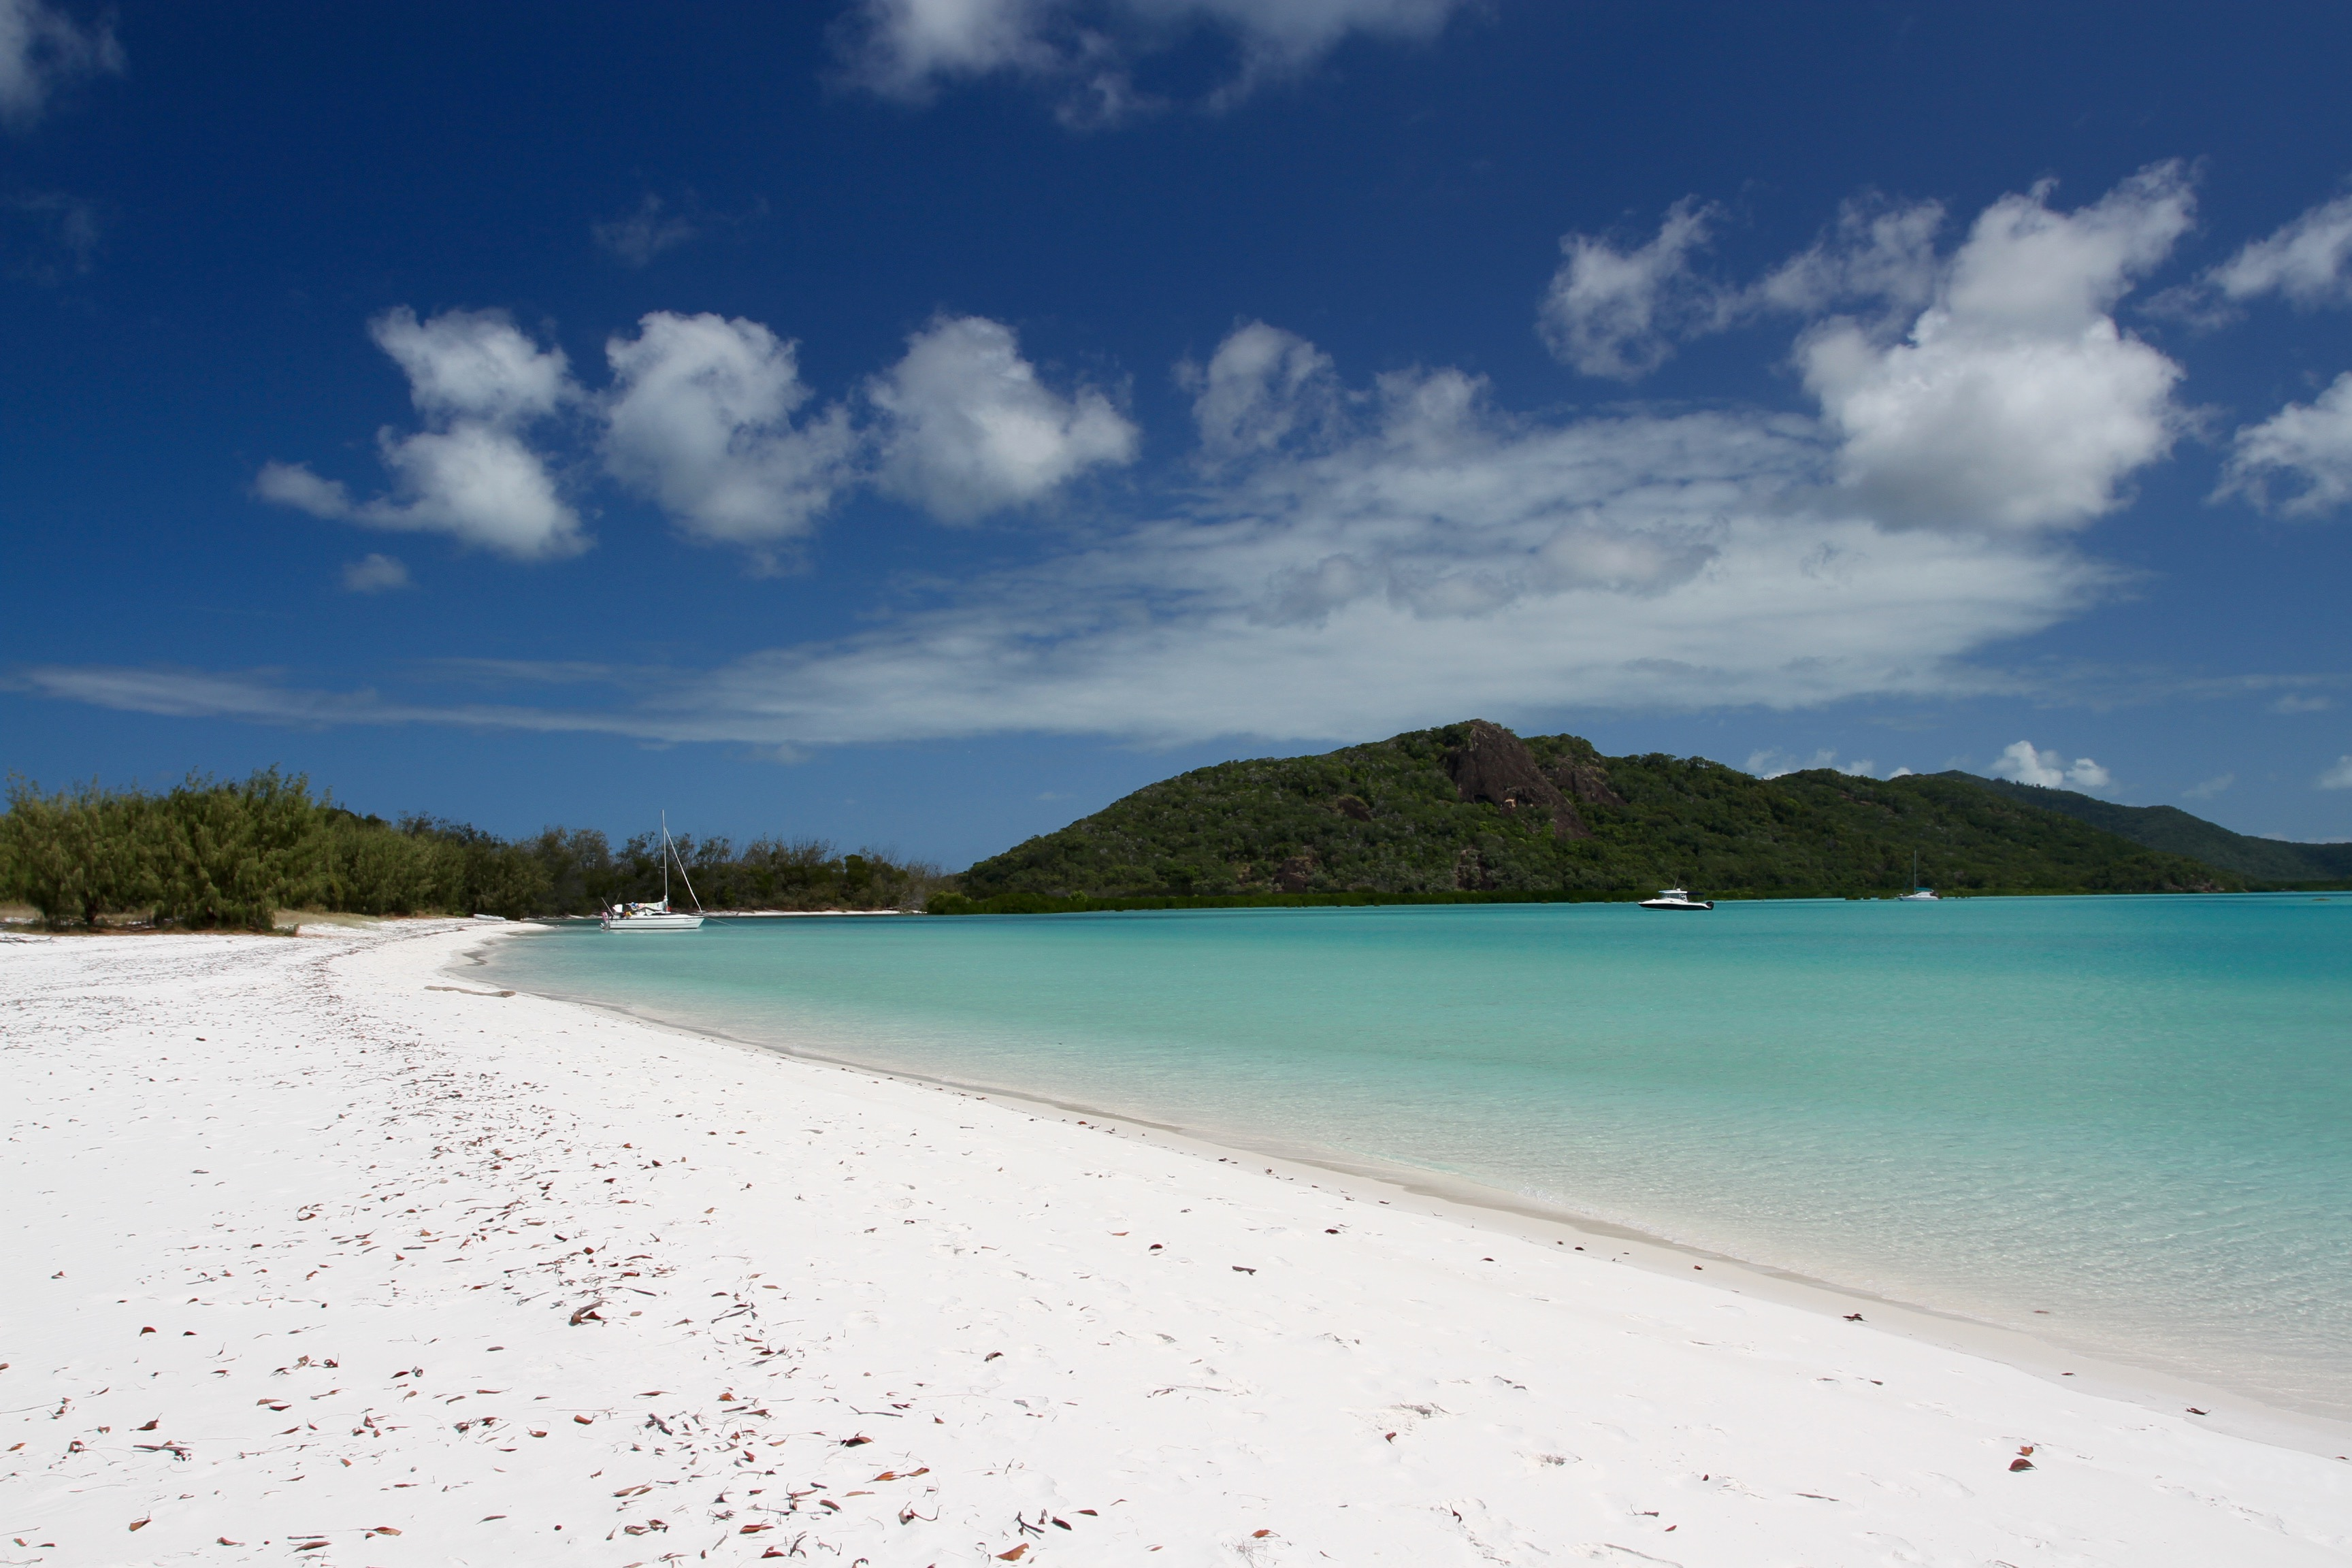 whitehaven beach, scenes from a tropical island